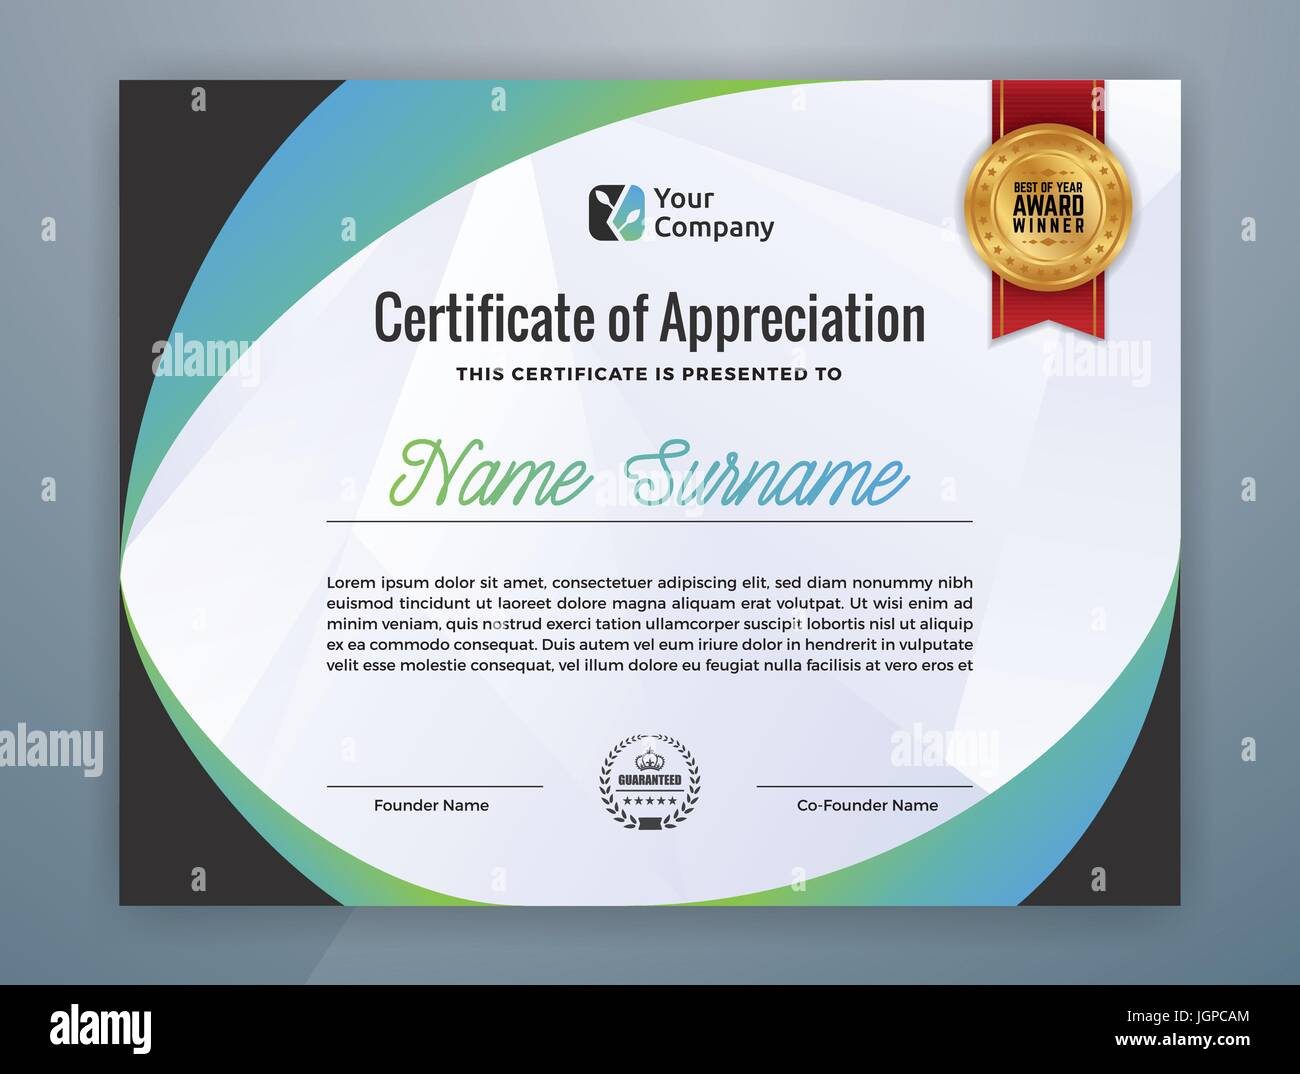 Free professional certificate templates